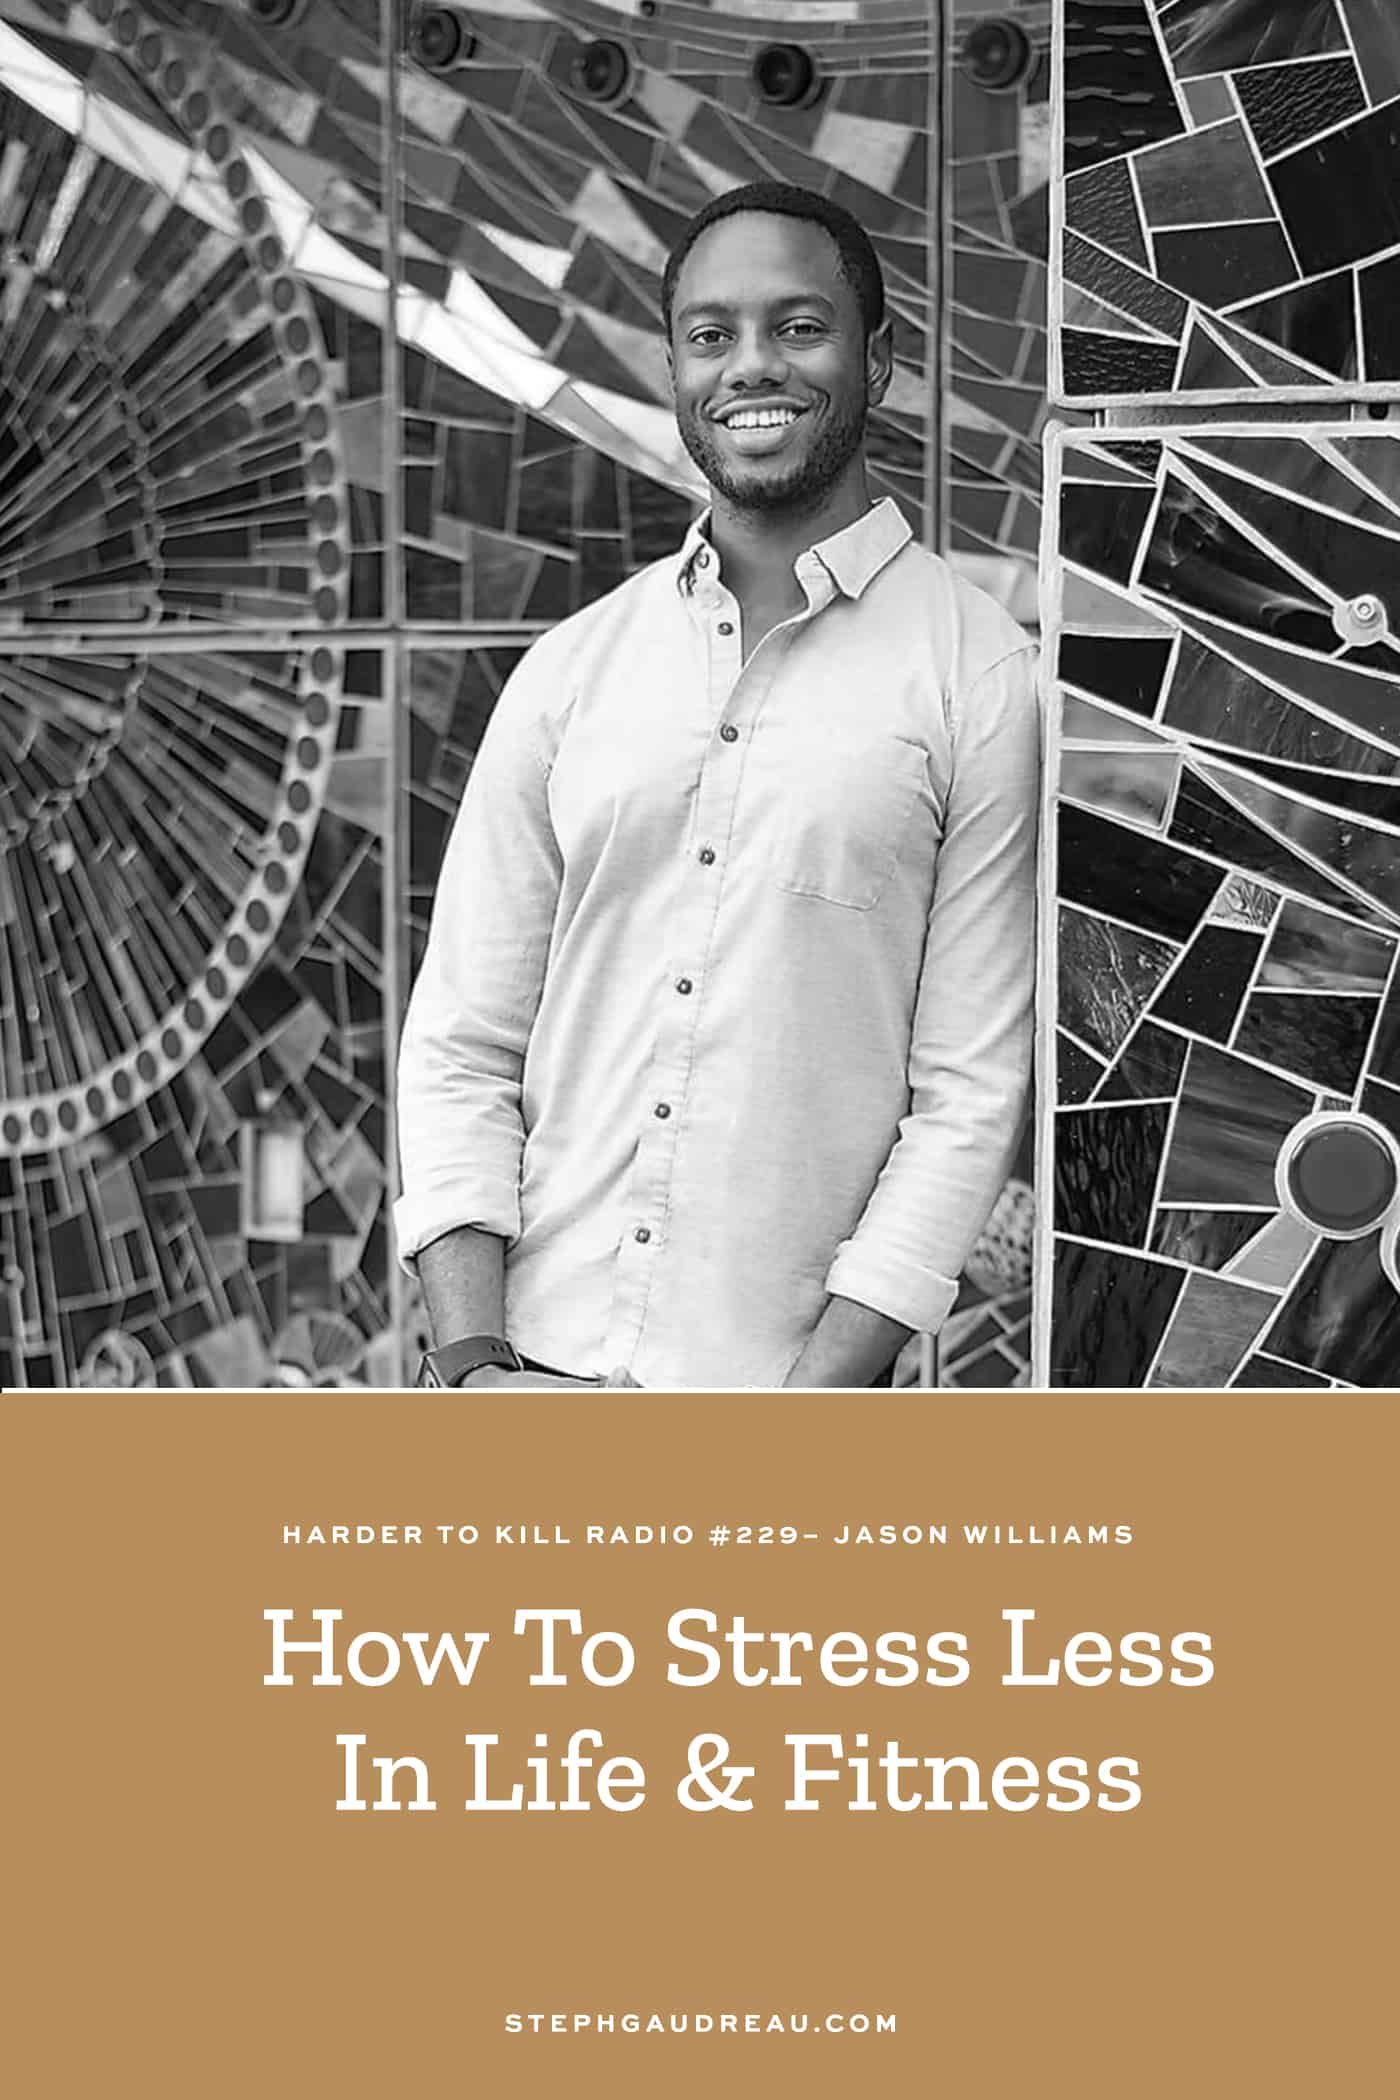 Harder To Kill Radio 229 How To Stress Less In Life & Fitness w/ Jason Williams